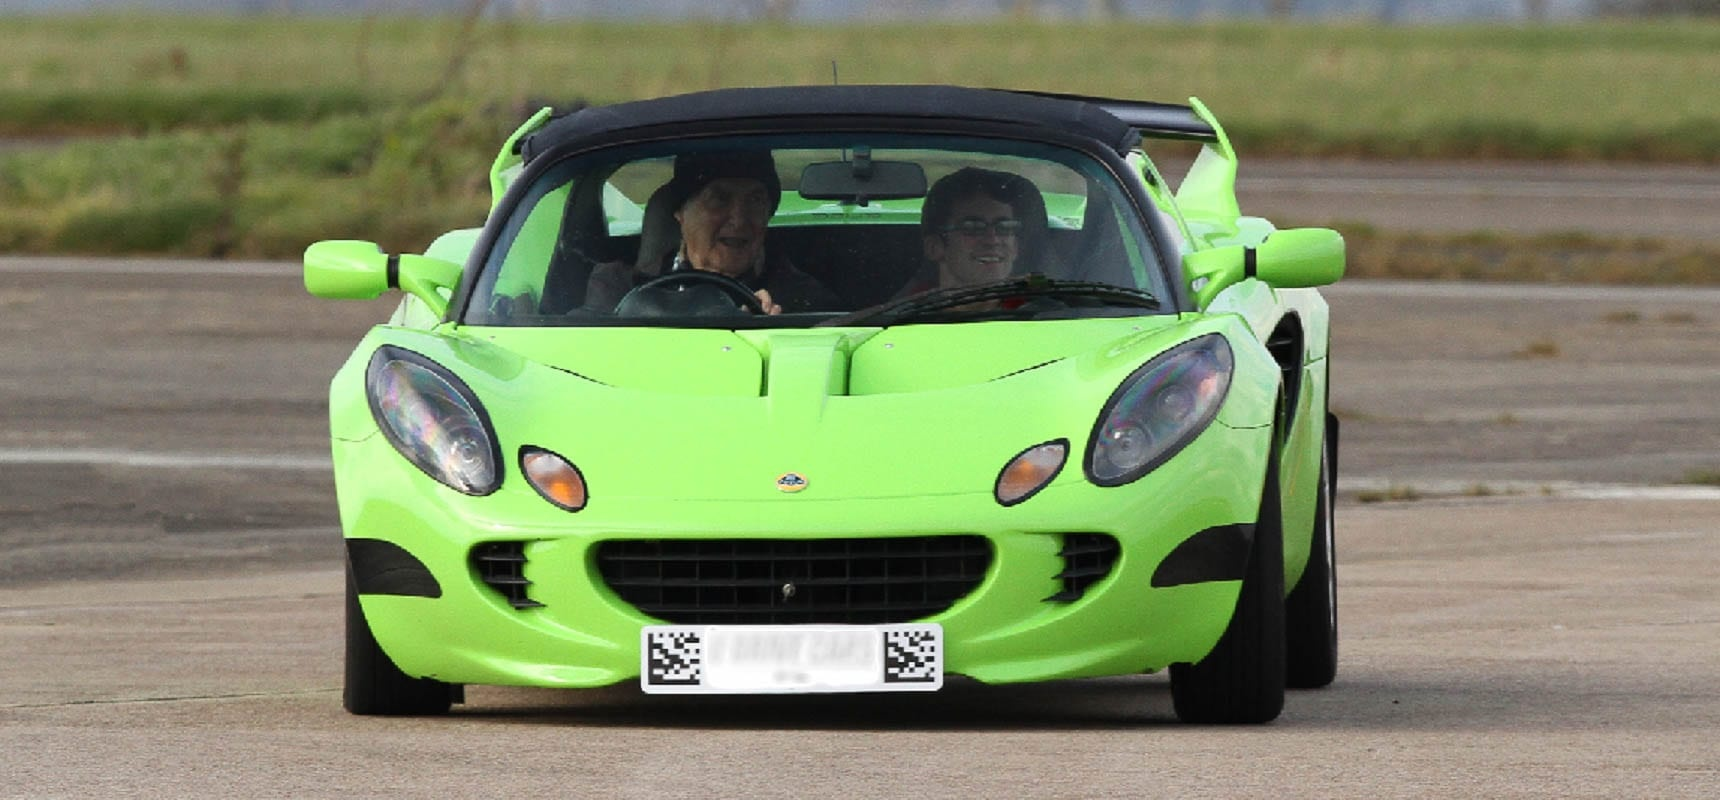 Lotus Thrill Ride Driving Experience - Oxfordshire-1